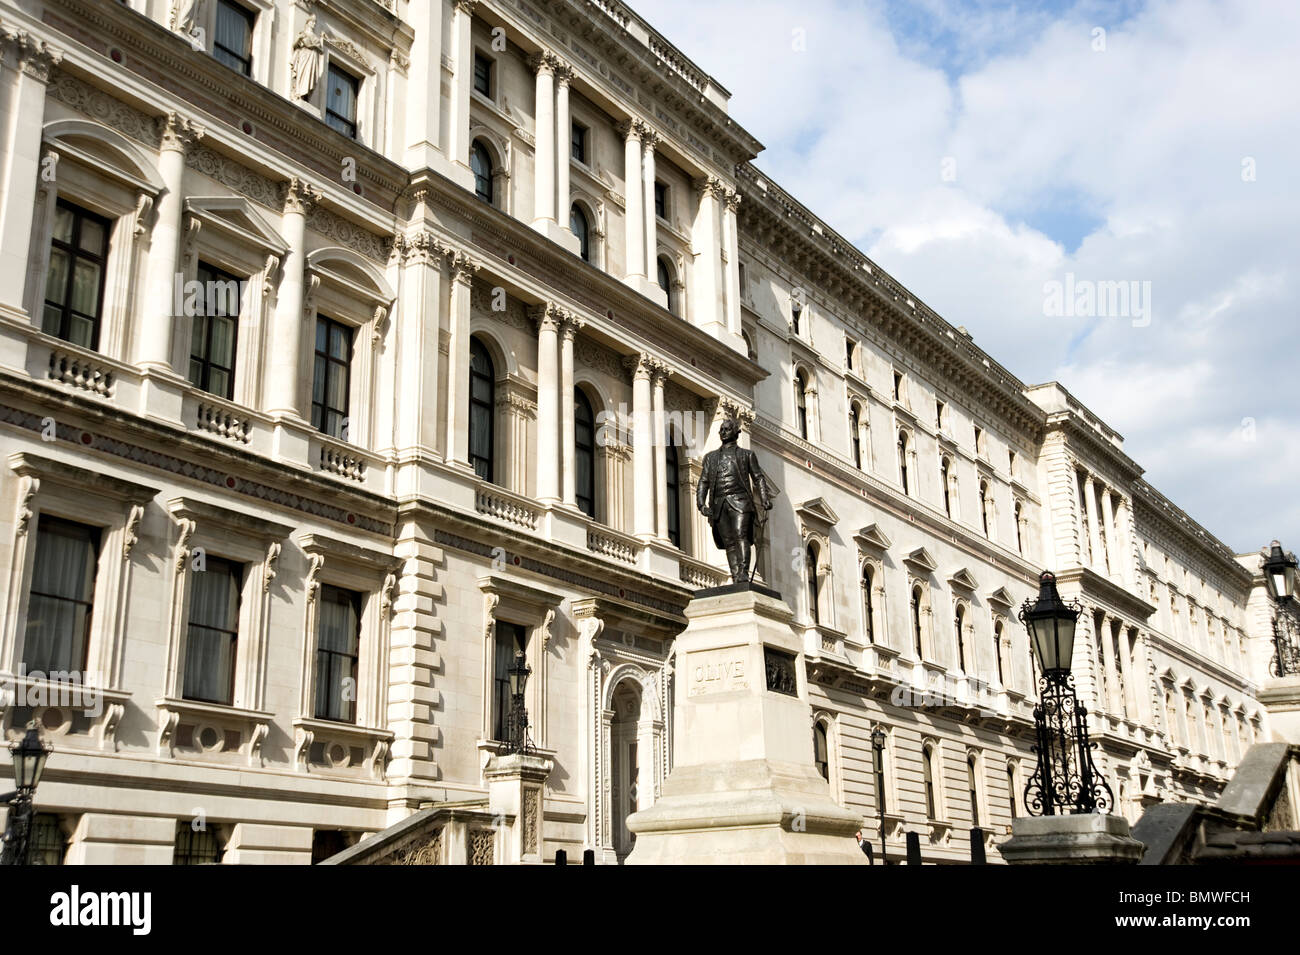 The Foreign & Commonwealth Office, Whitehall, London, England, UK - Stock Image